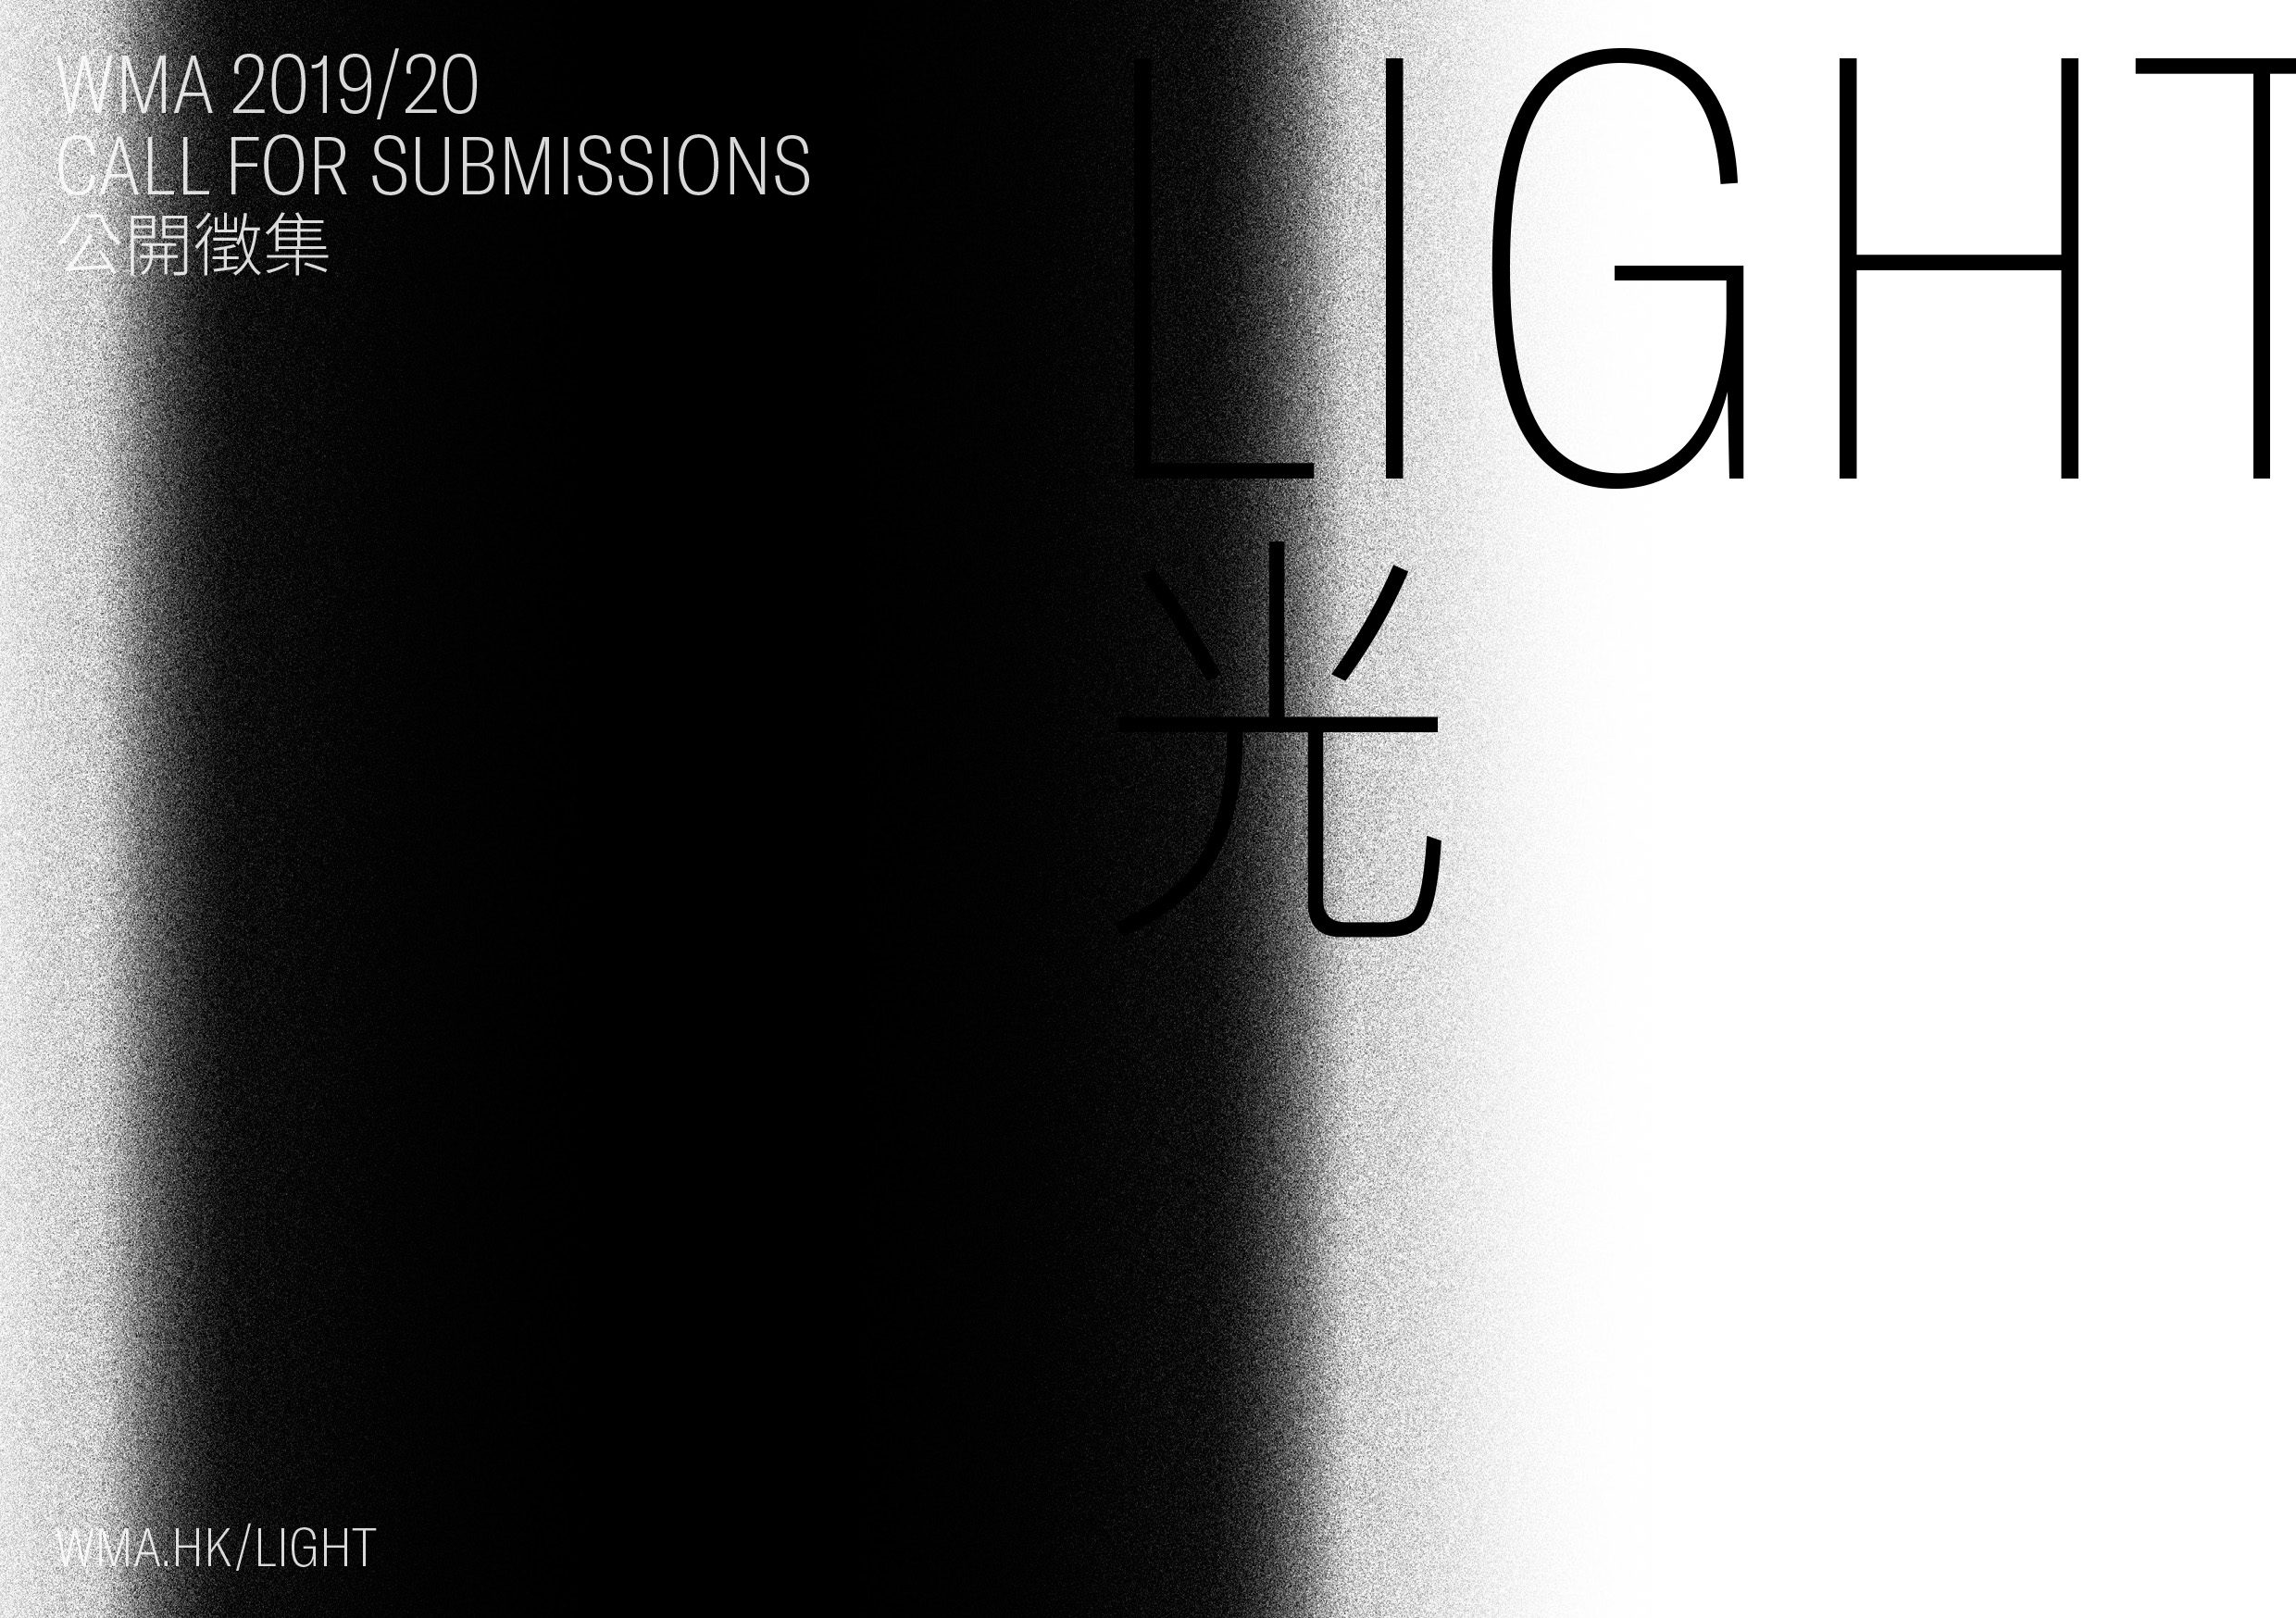 Wma masters and wma commission 2019 20 call for submission on the theme light submission starts now until 30 september 2019